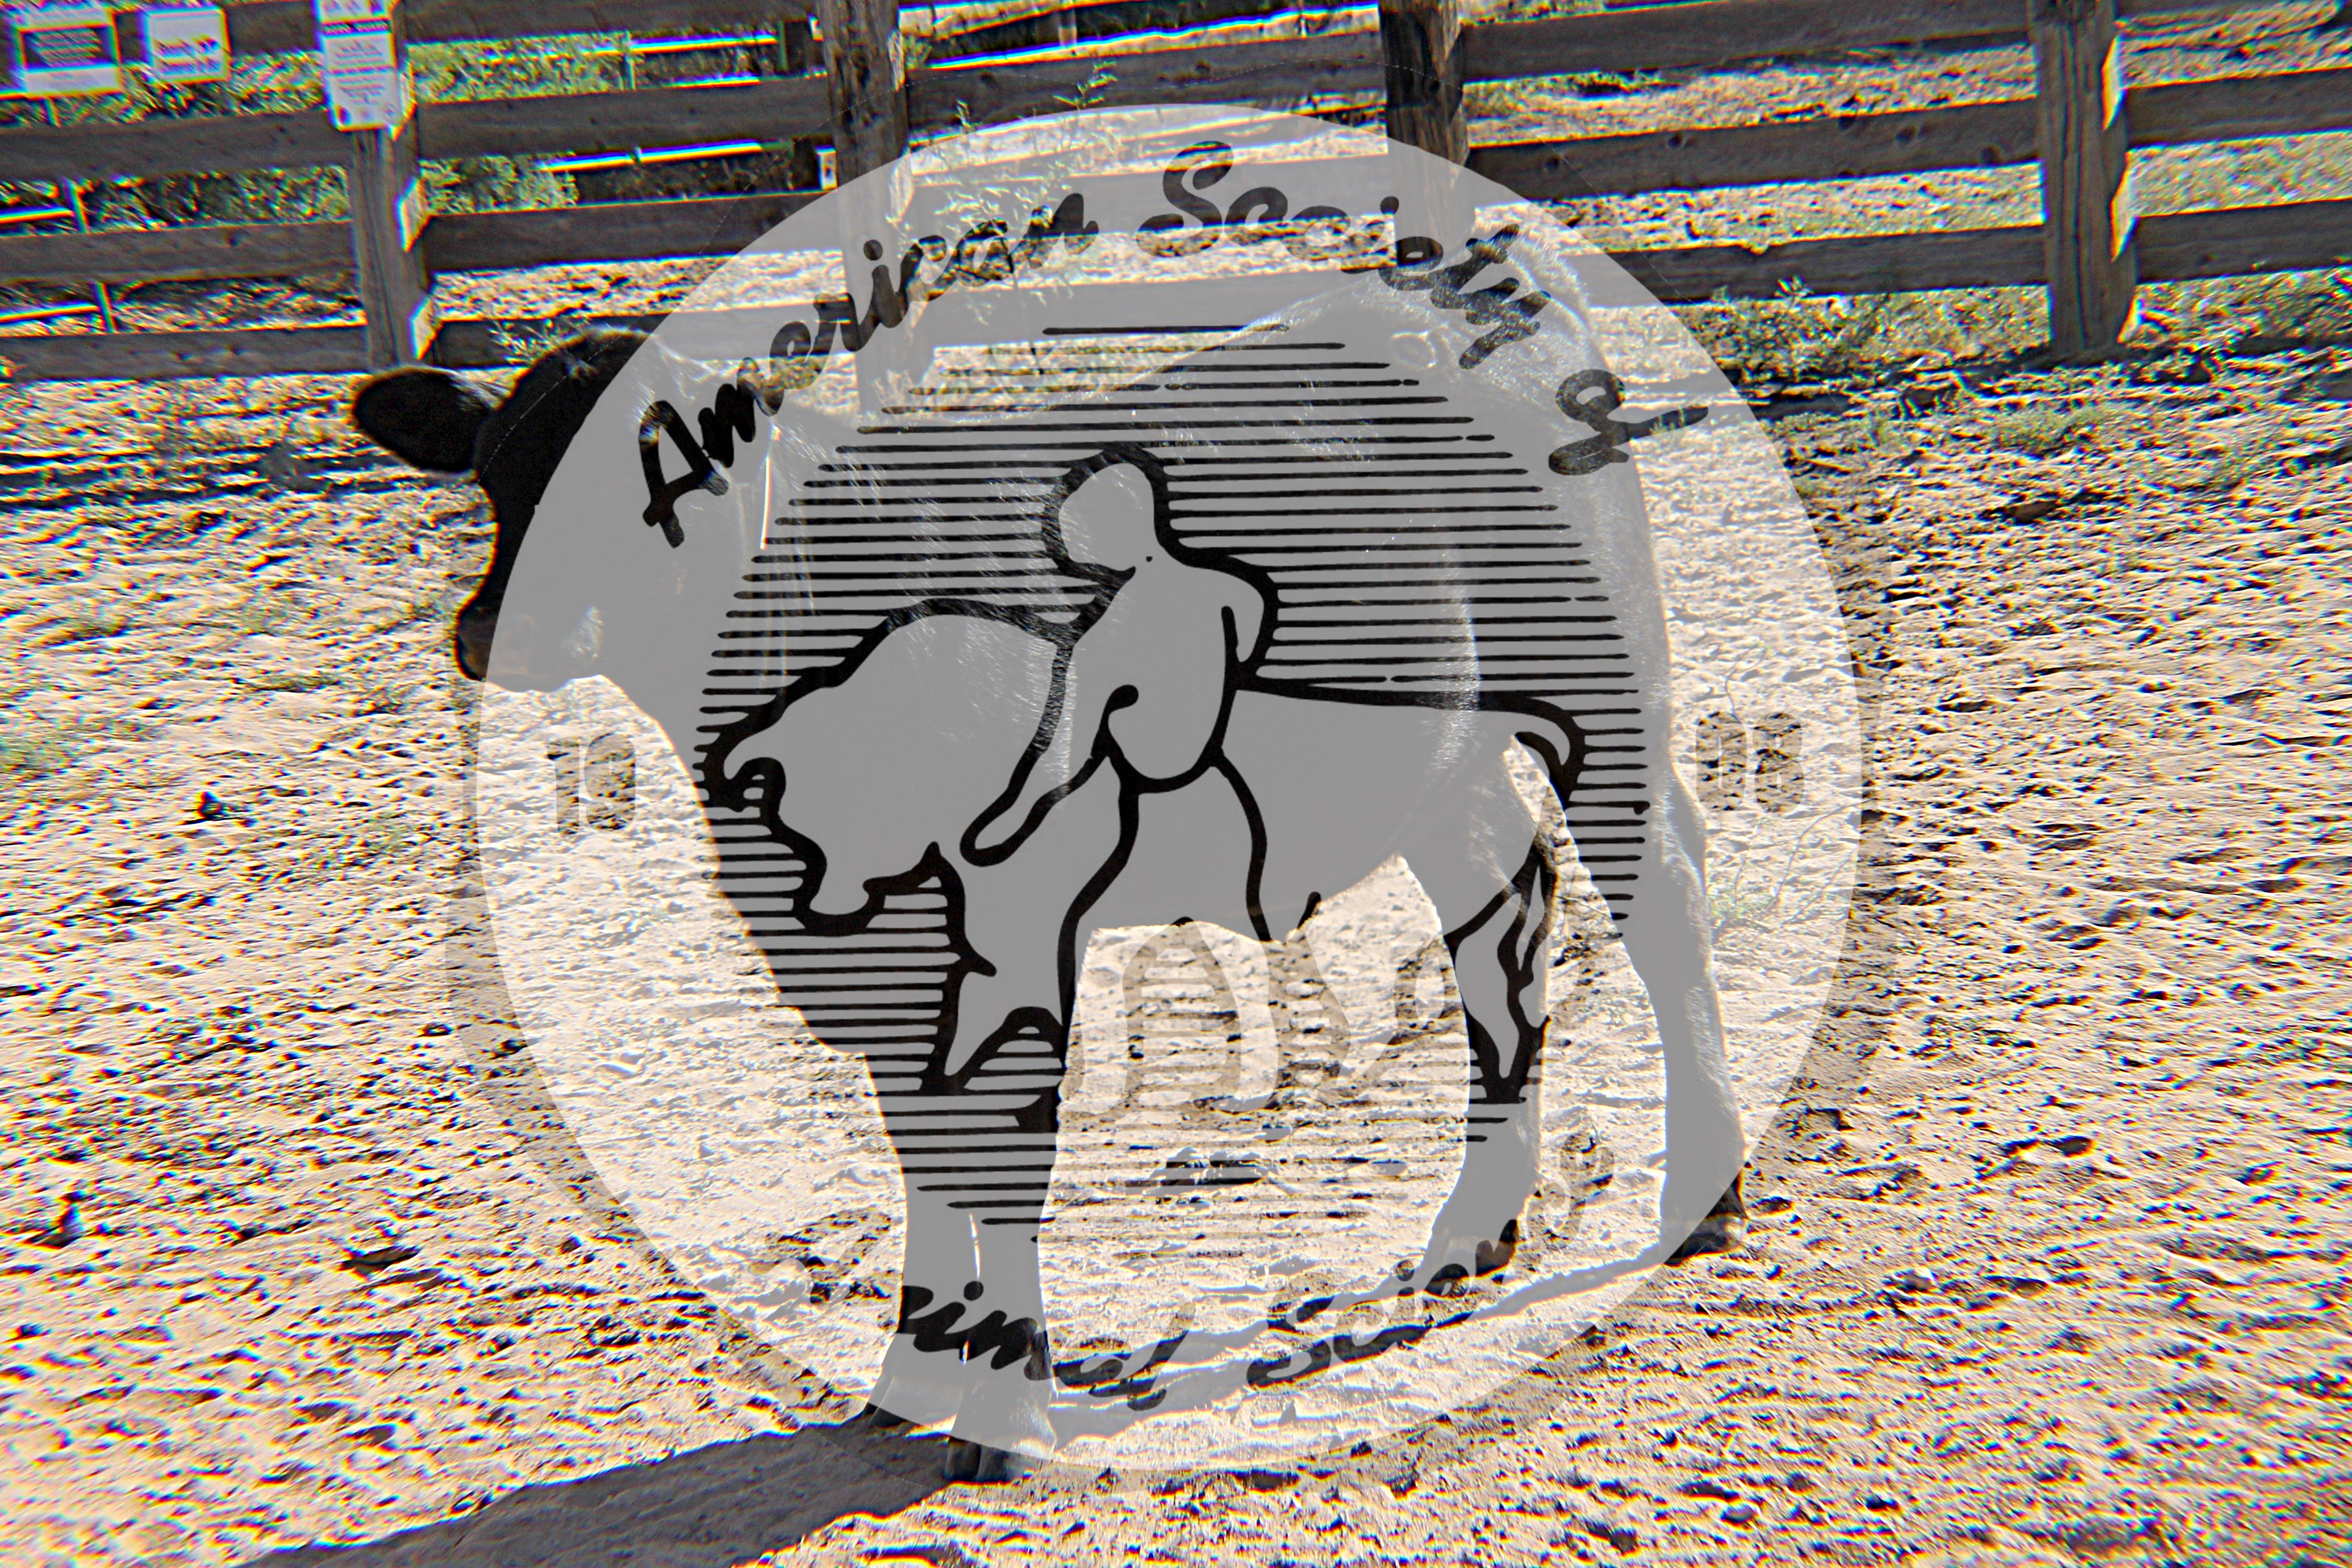 A black Brangus calf standing in a pen in at New Mexico State University's Chihuahuan Desert Rangeland Research Center in Las Cruces, New Mexico. Brangus are a beef cattle breed consisting of five-eighths Angus and three-eighths Brahman genetics.